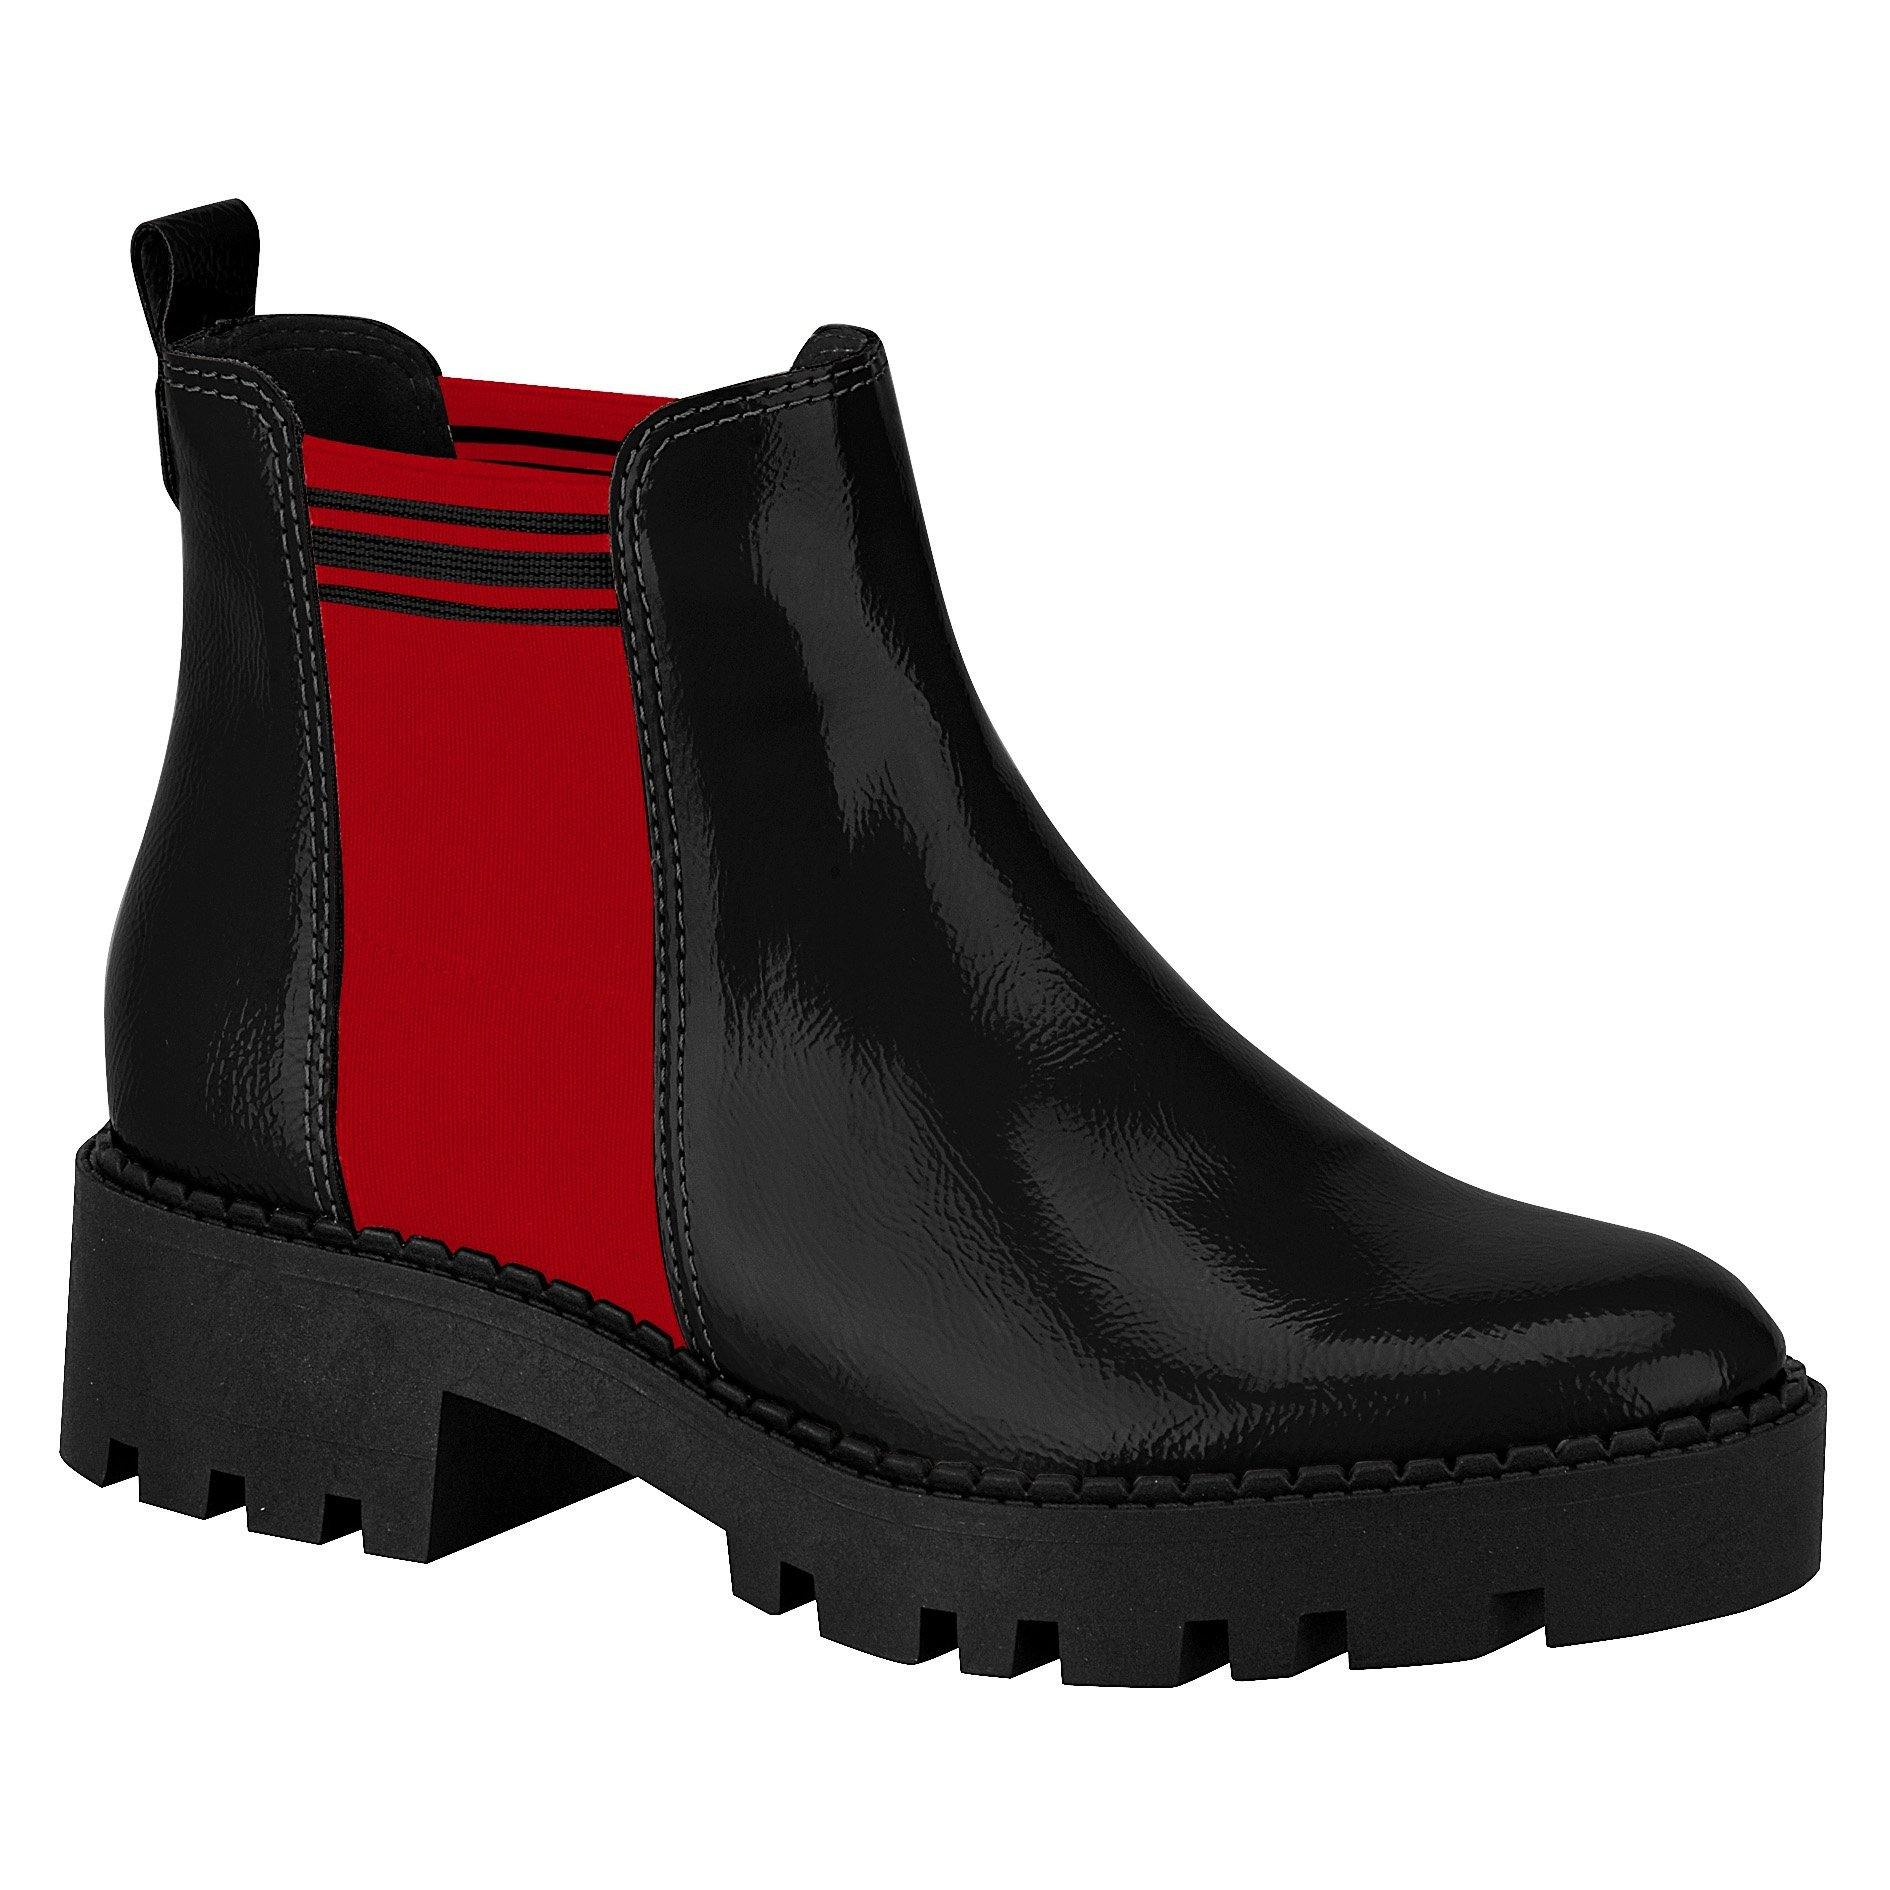 Moleca 5331-100 Ankle Boots in Black and Red